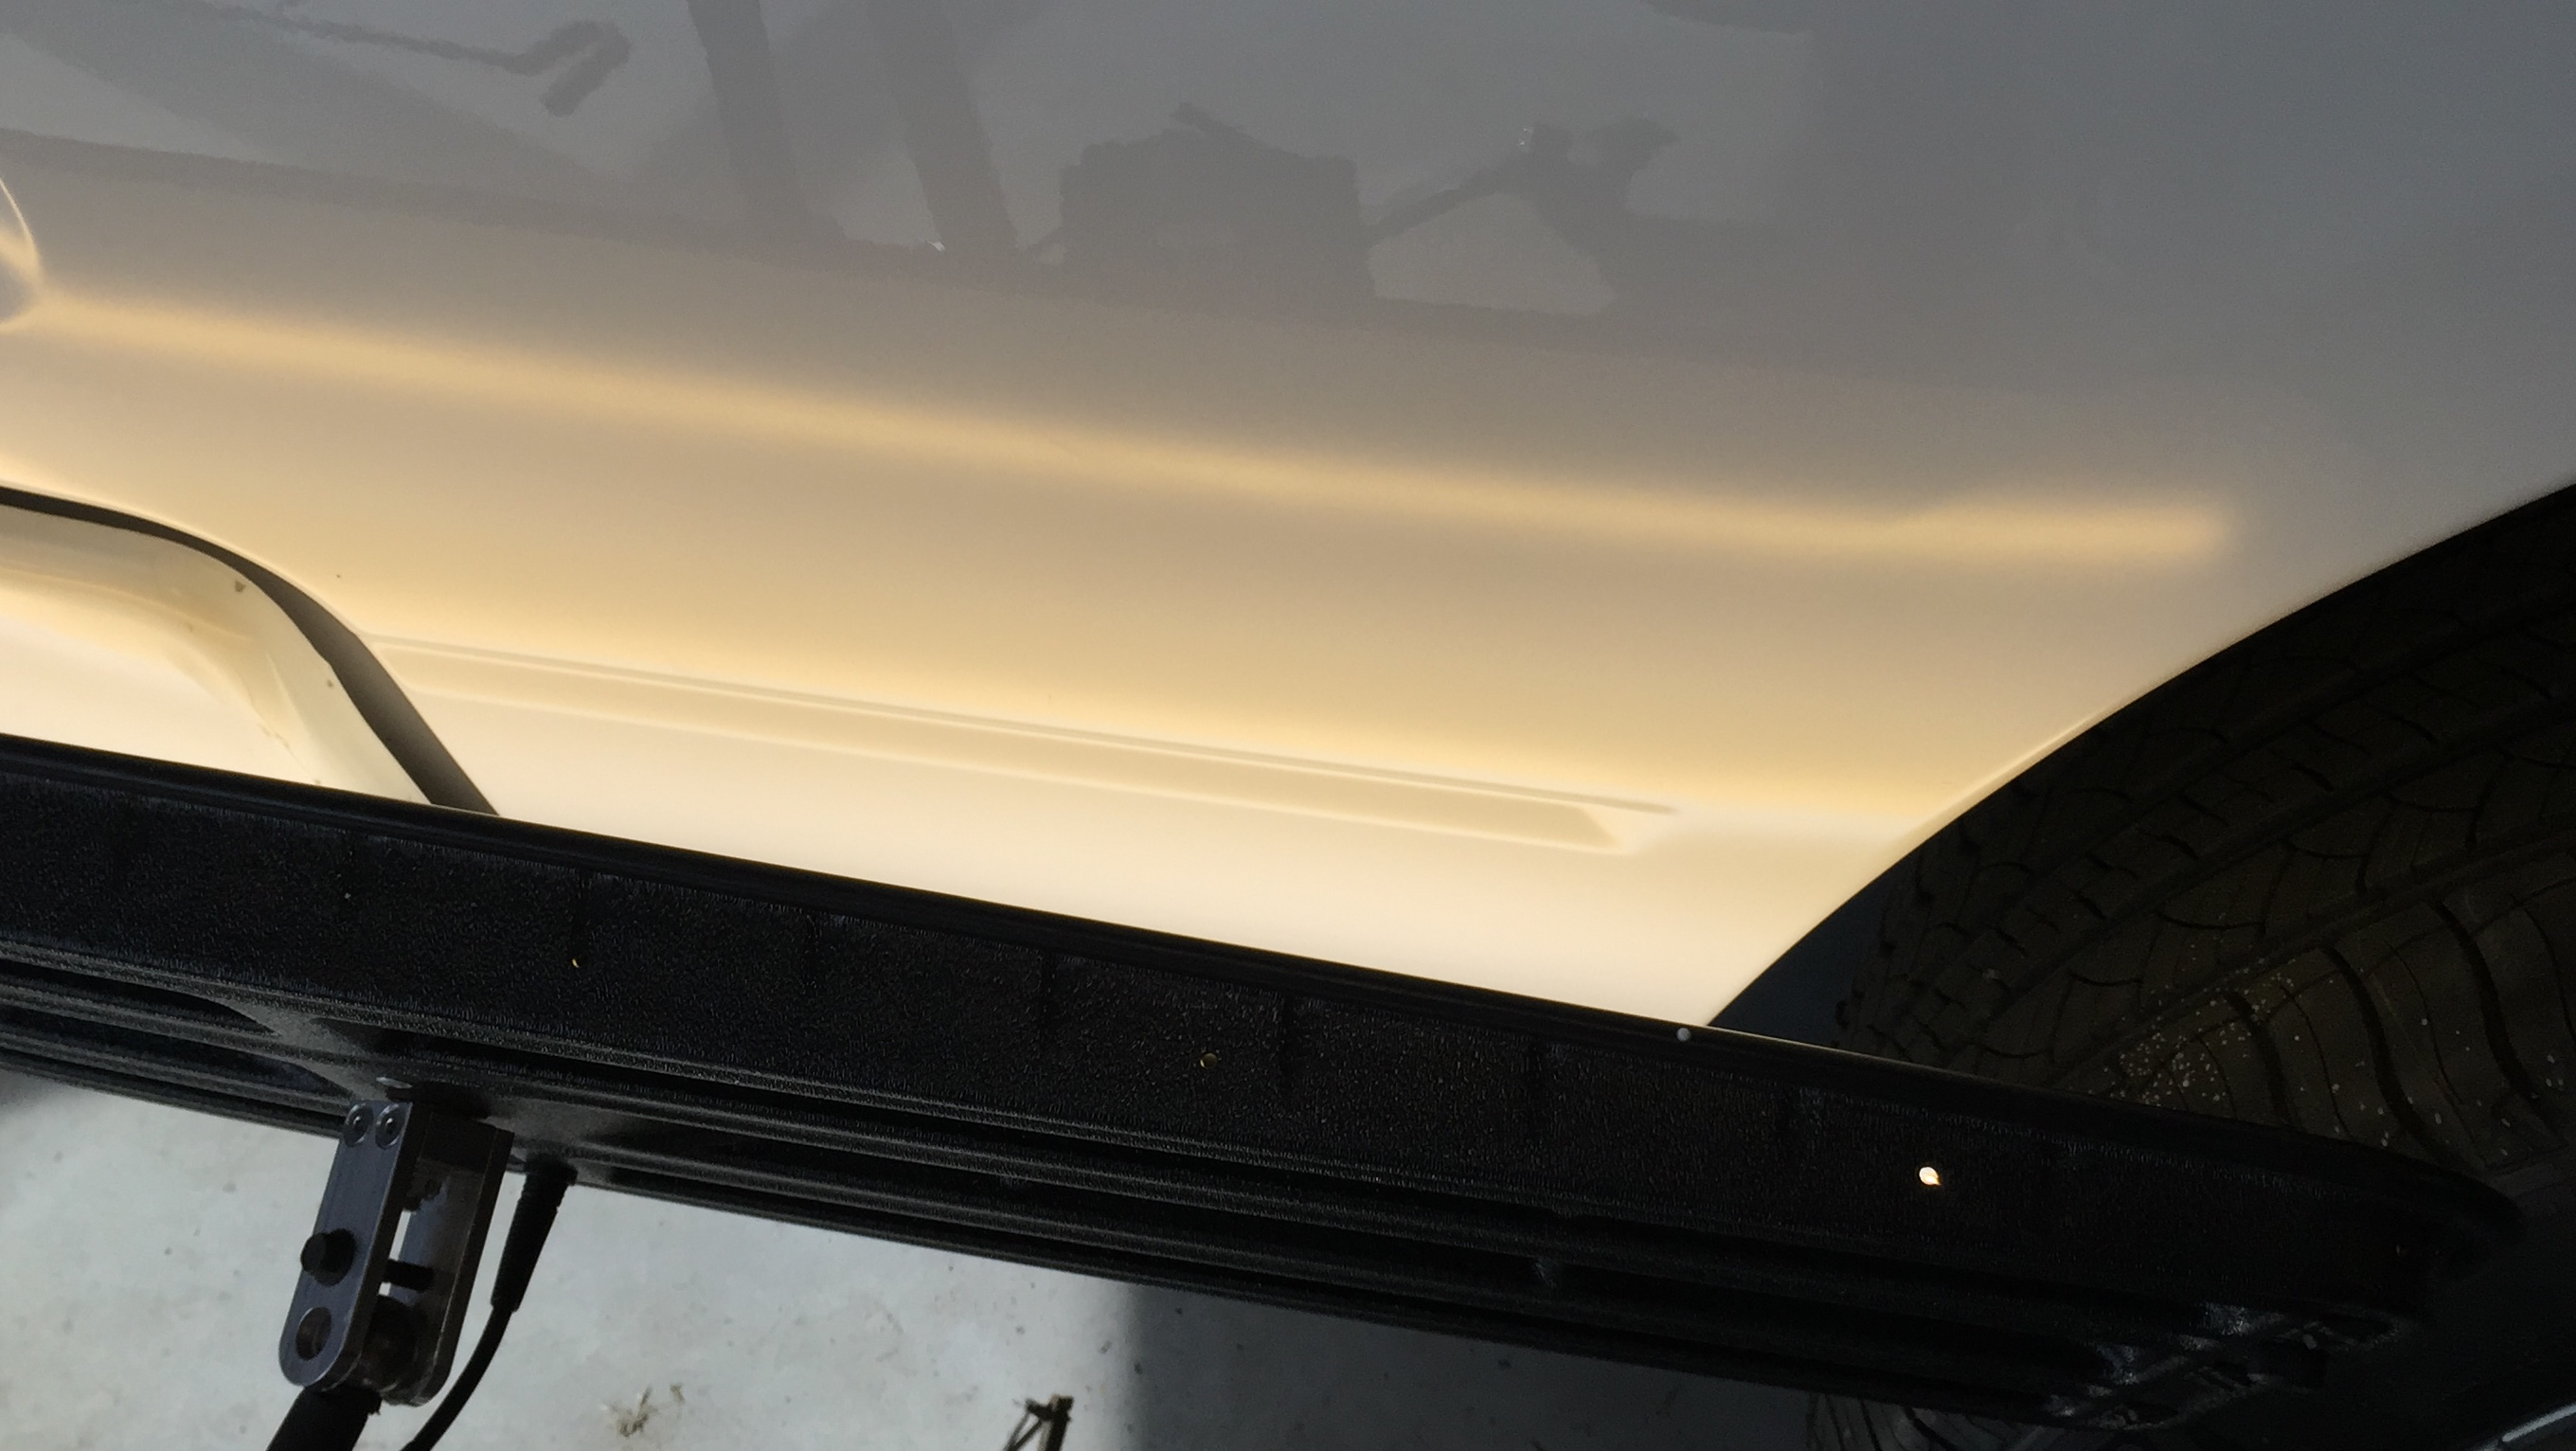 Springfield, IL 2014 Dodge Ram Bedside crease, Paintless Dent Removal, Dent Repair Http://217dent.com